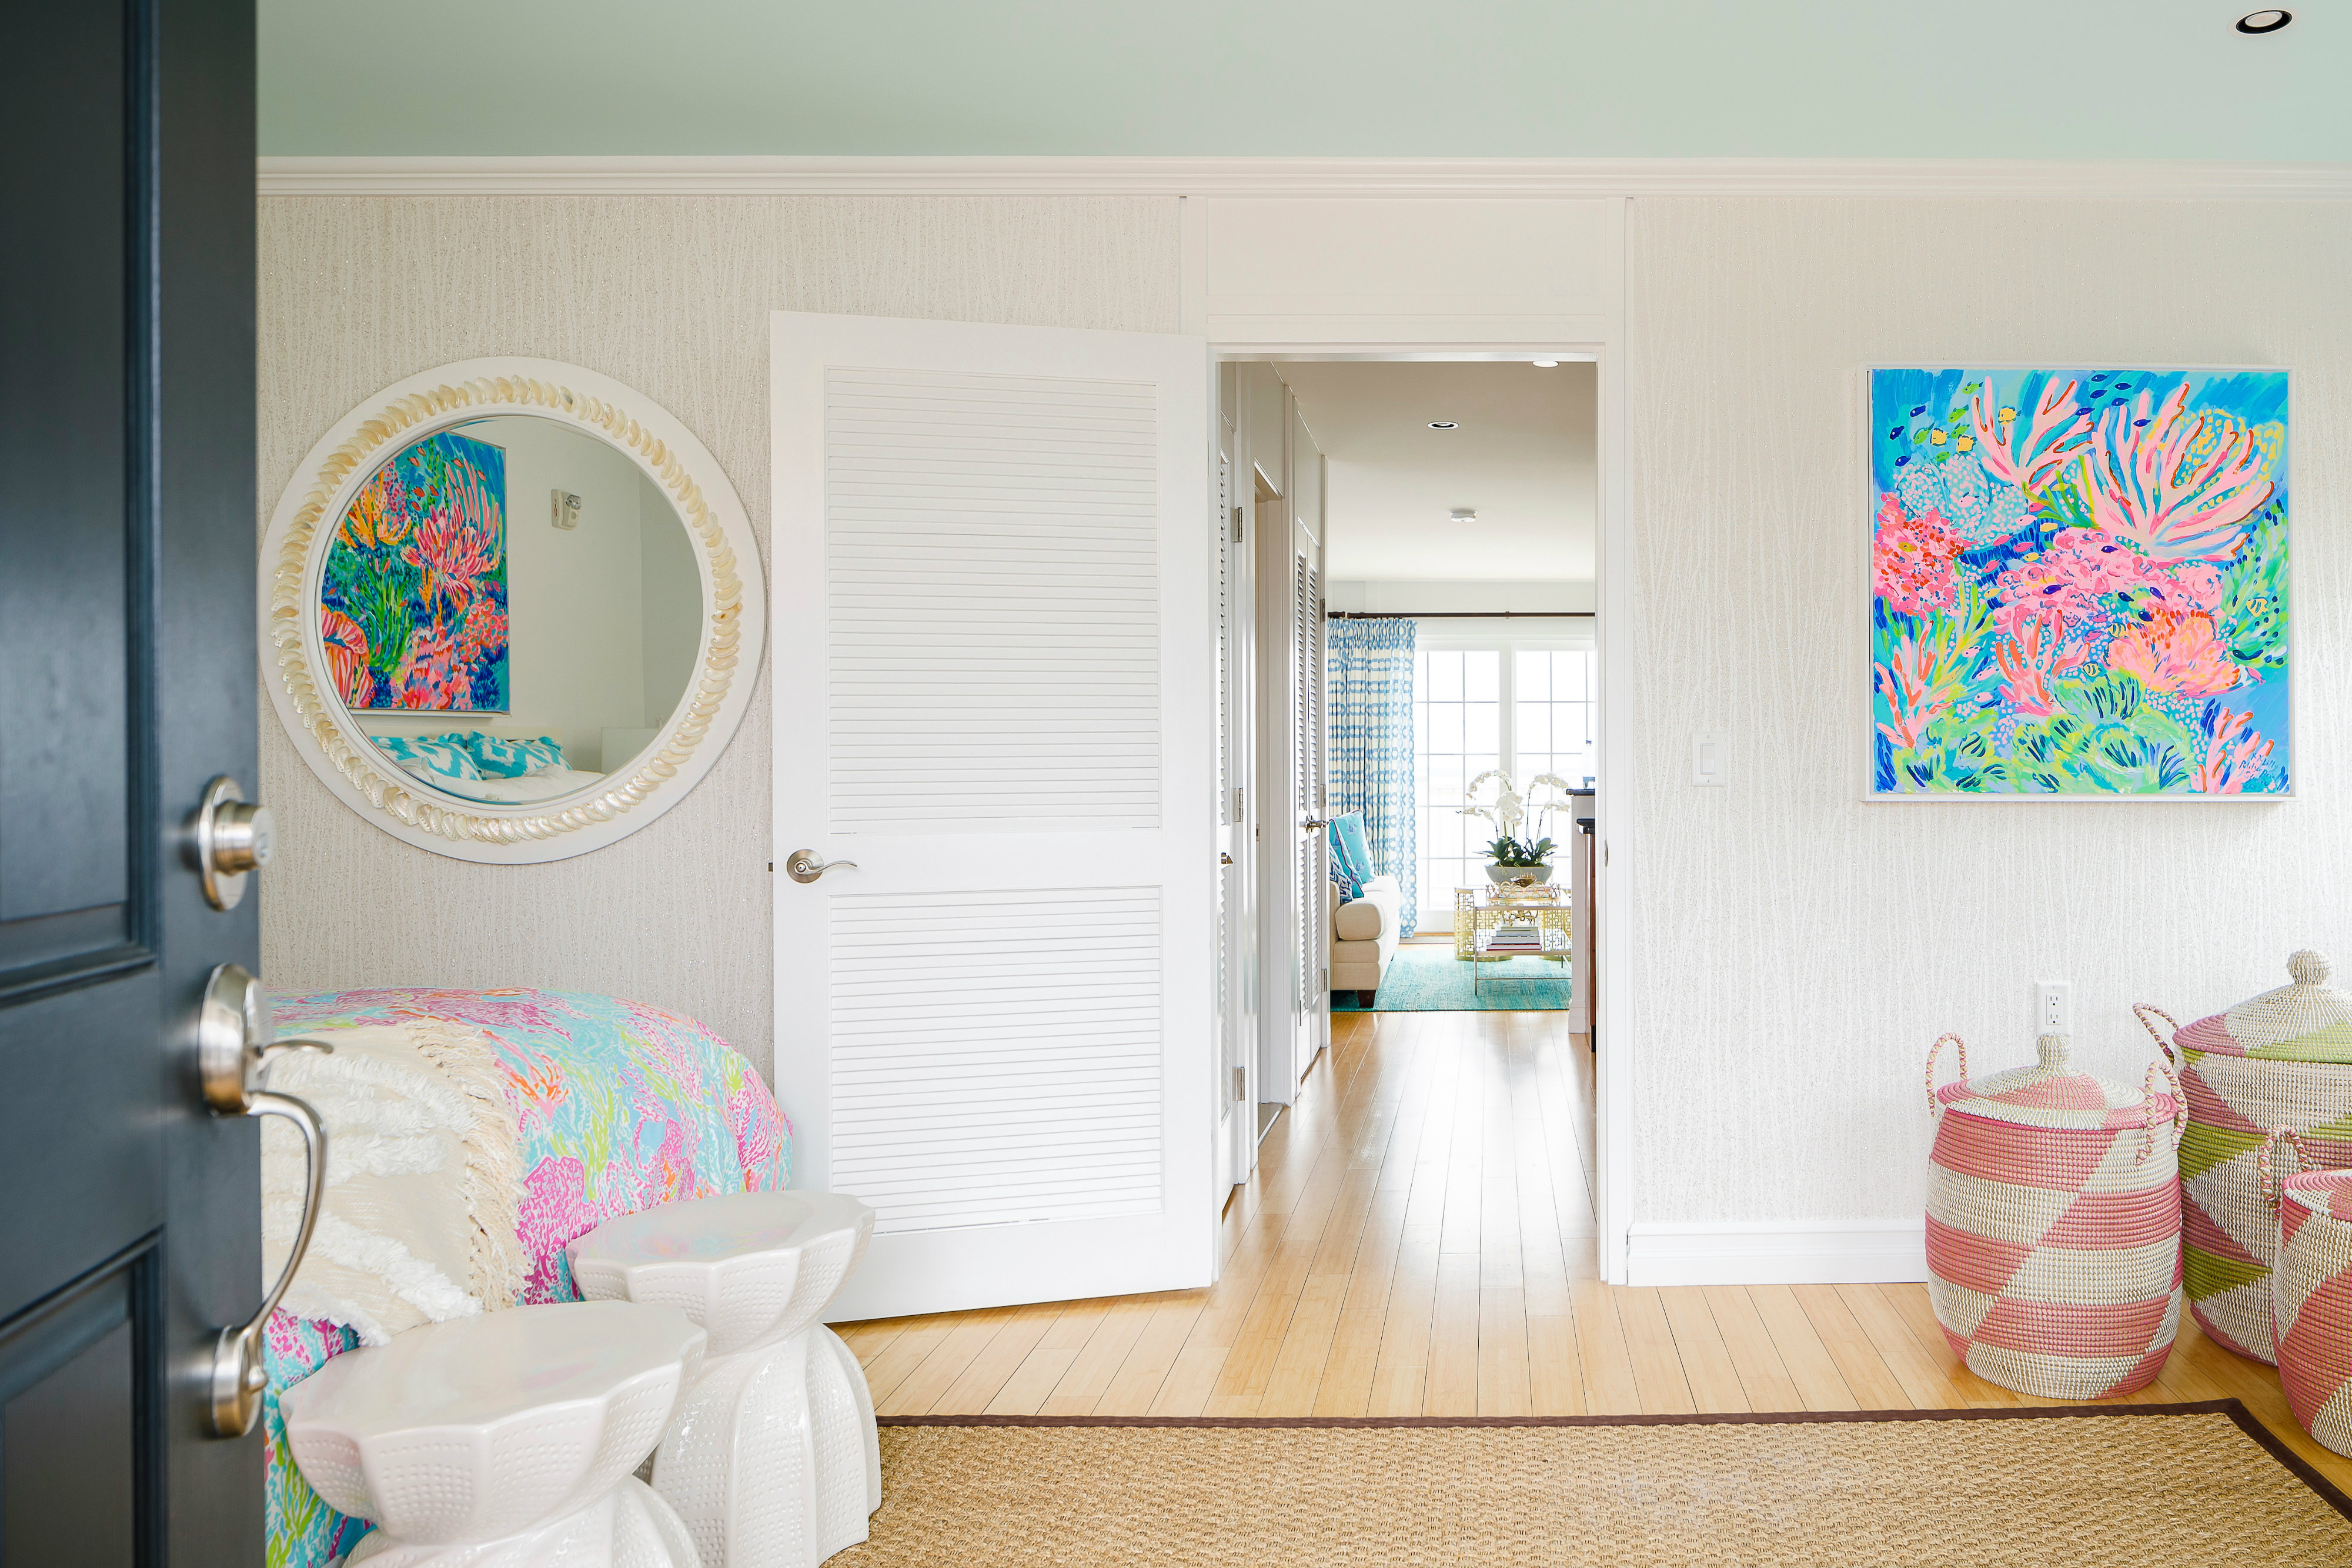 The Summer Of Champagne And Lilly Pulitzer In Watch Hill